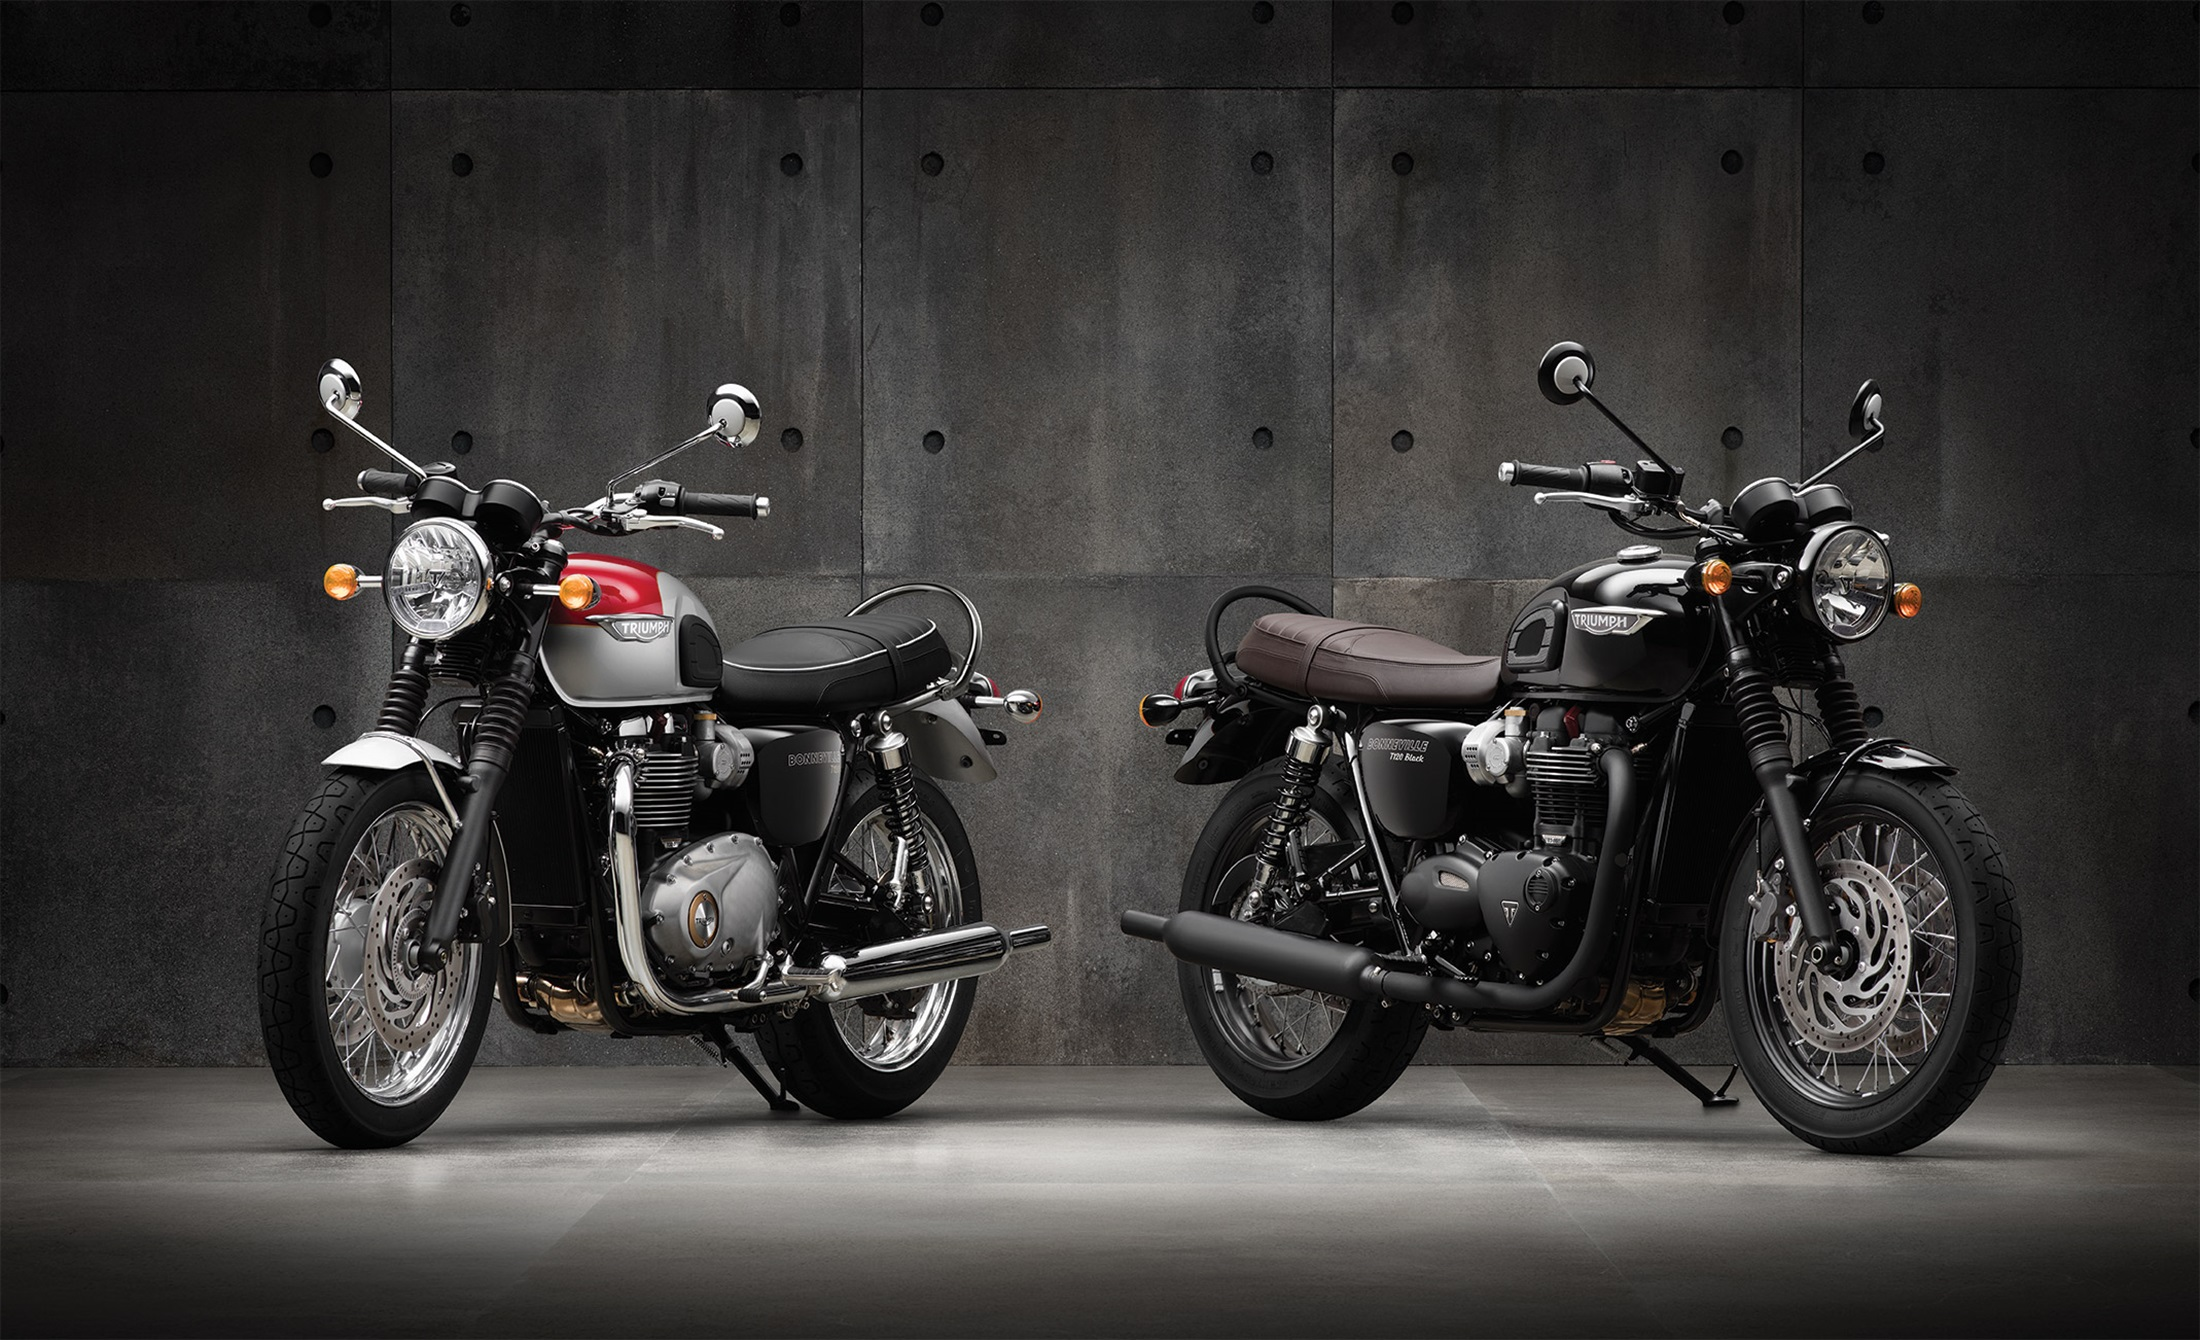 Triumph Bonneville T120 Specs >> 2016 Triumph Bonneville T120 and T120 Black First Photos Look Smashing - autoevolution